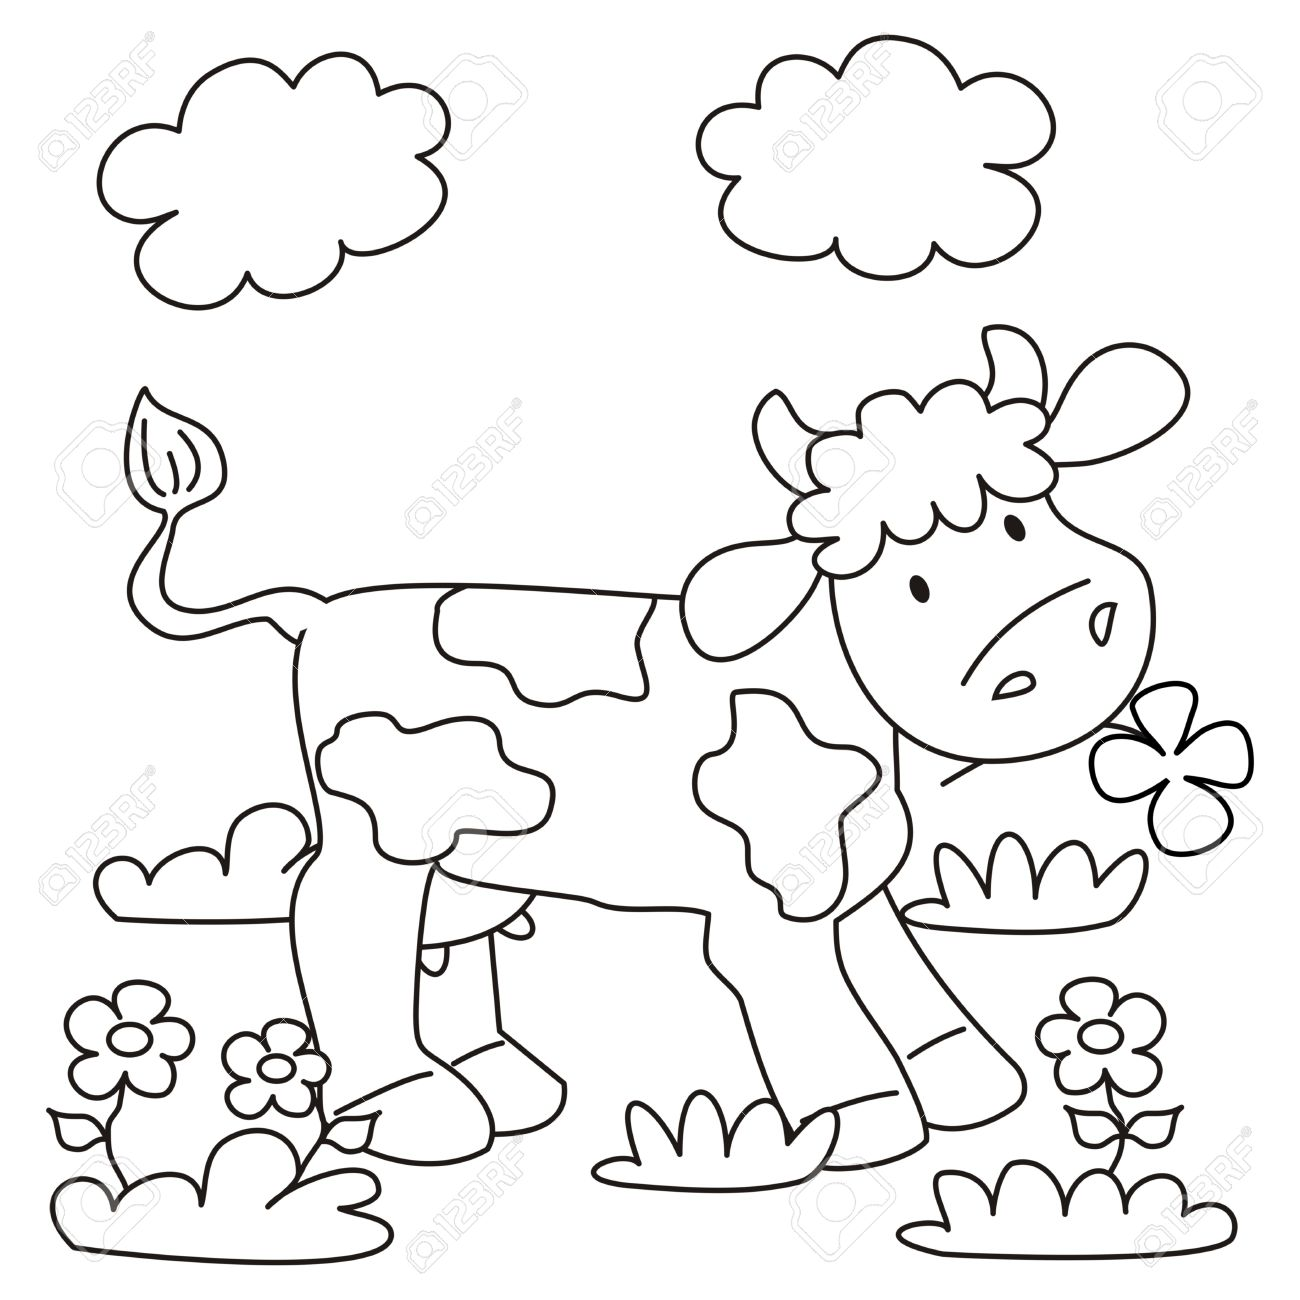 cow coloring book royalty free cliparts vectors and stock